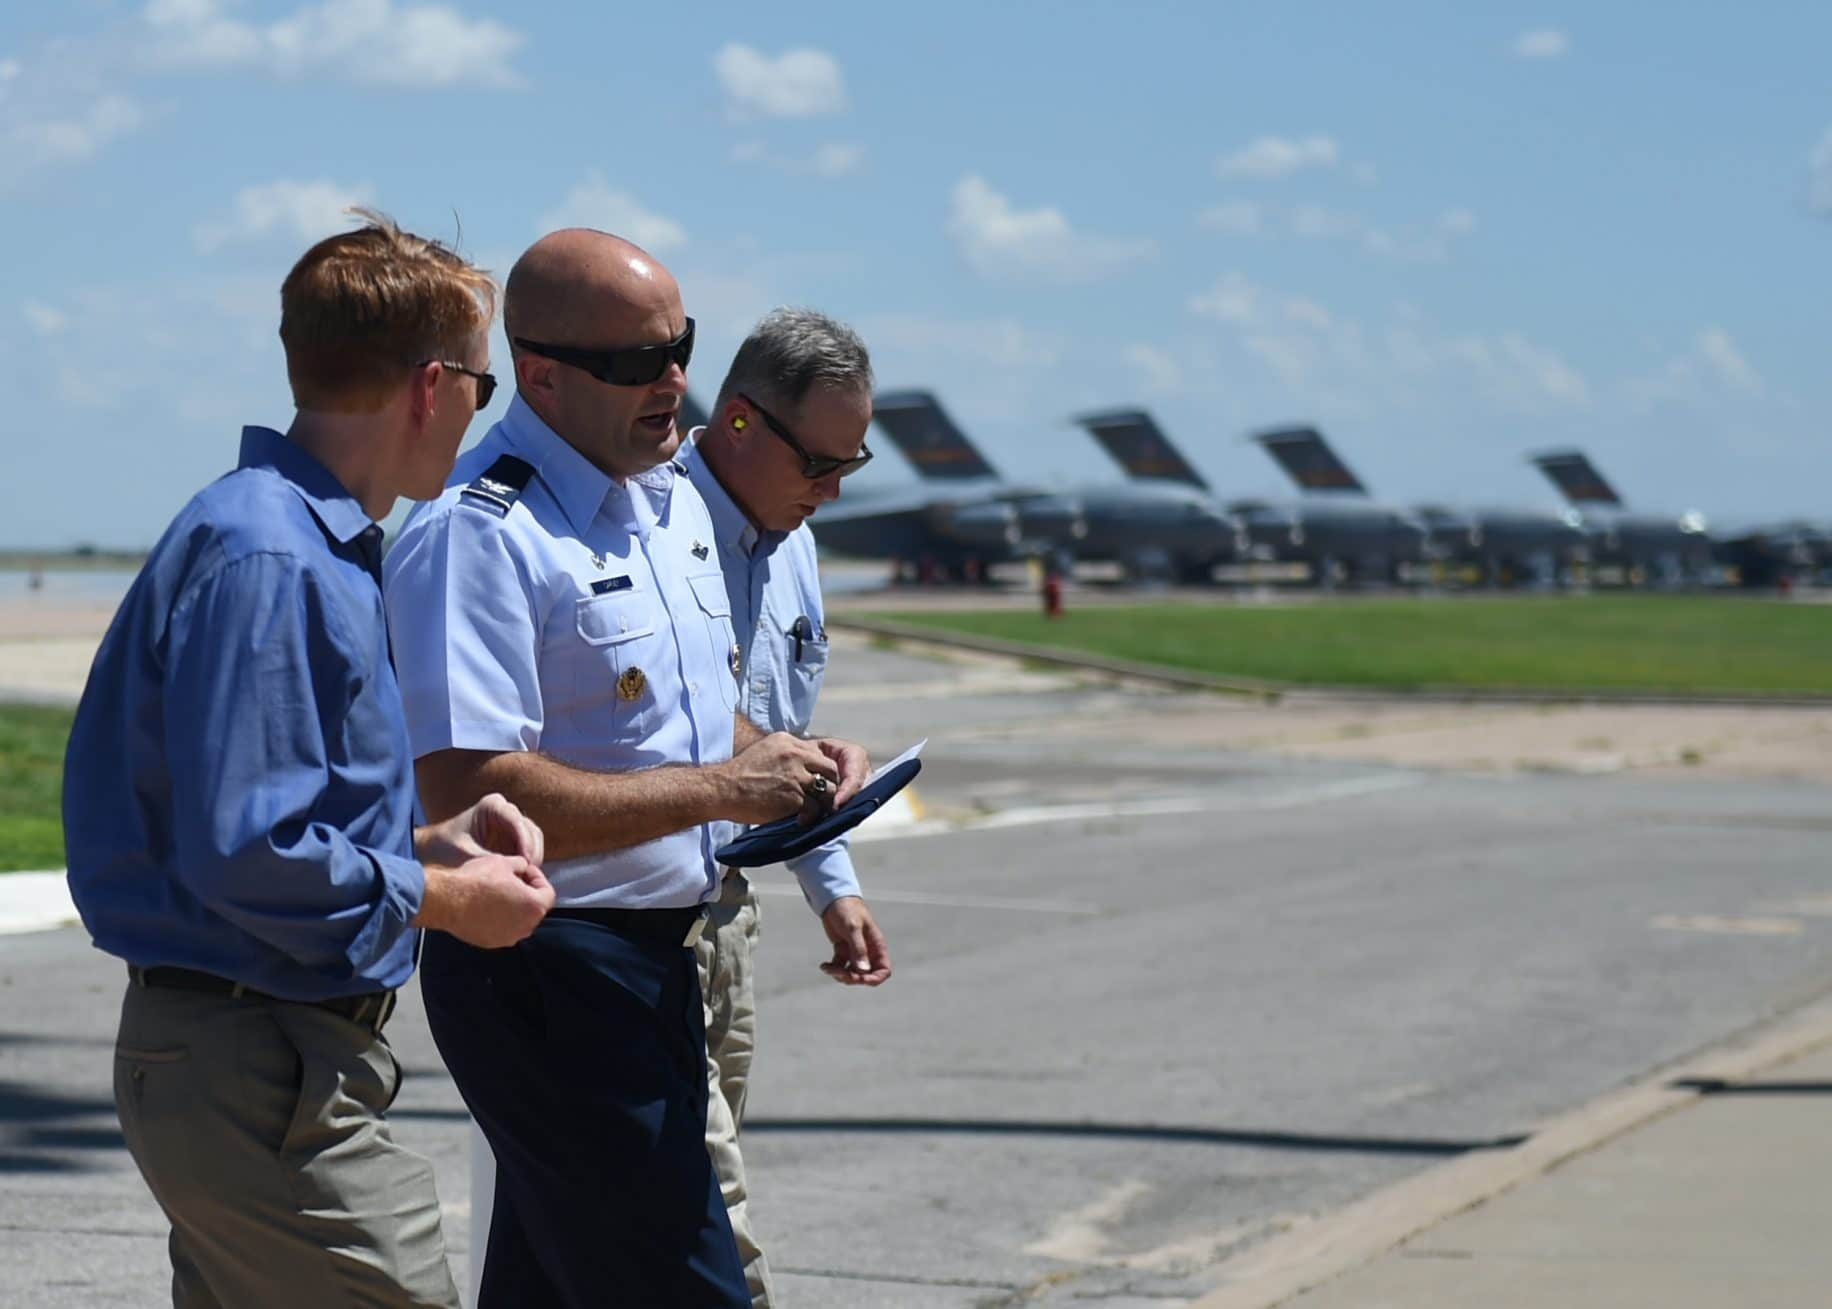 Fort Sill facility may not be needed for migrants, Lankford says